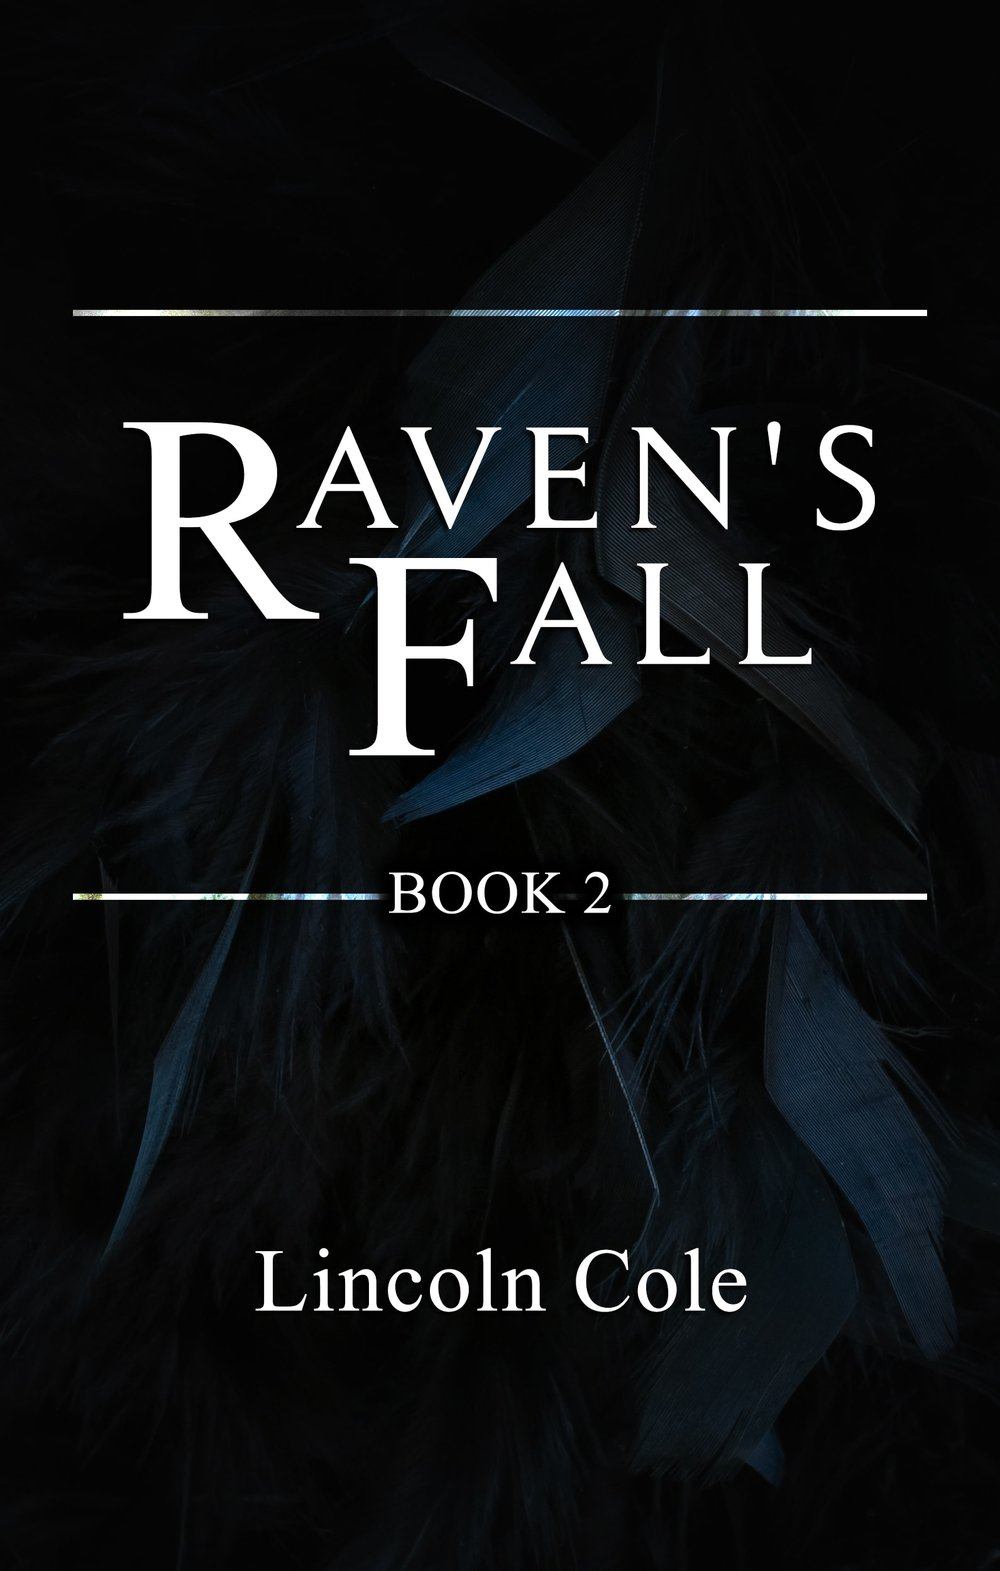 Raven's Fall - Abigail was arrested by the Council, and now she's awaiting trial for the decisions she made leading up to and culminating in the events of Raven's Peak. She is restless while she waits for answers and knows that there is a real threat outside their walls plotting to bring them down.Meanwhile, Haatim is getting a crash course in this world he only recently entered and finding out that nothing is as it seems.There are dark clouds on the horizon and it is coming whether they are prepared or not. Will they be able to weather this storm?